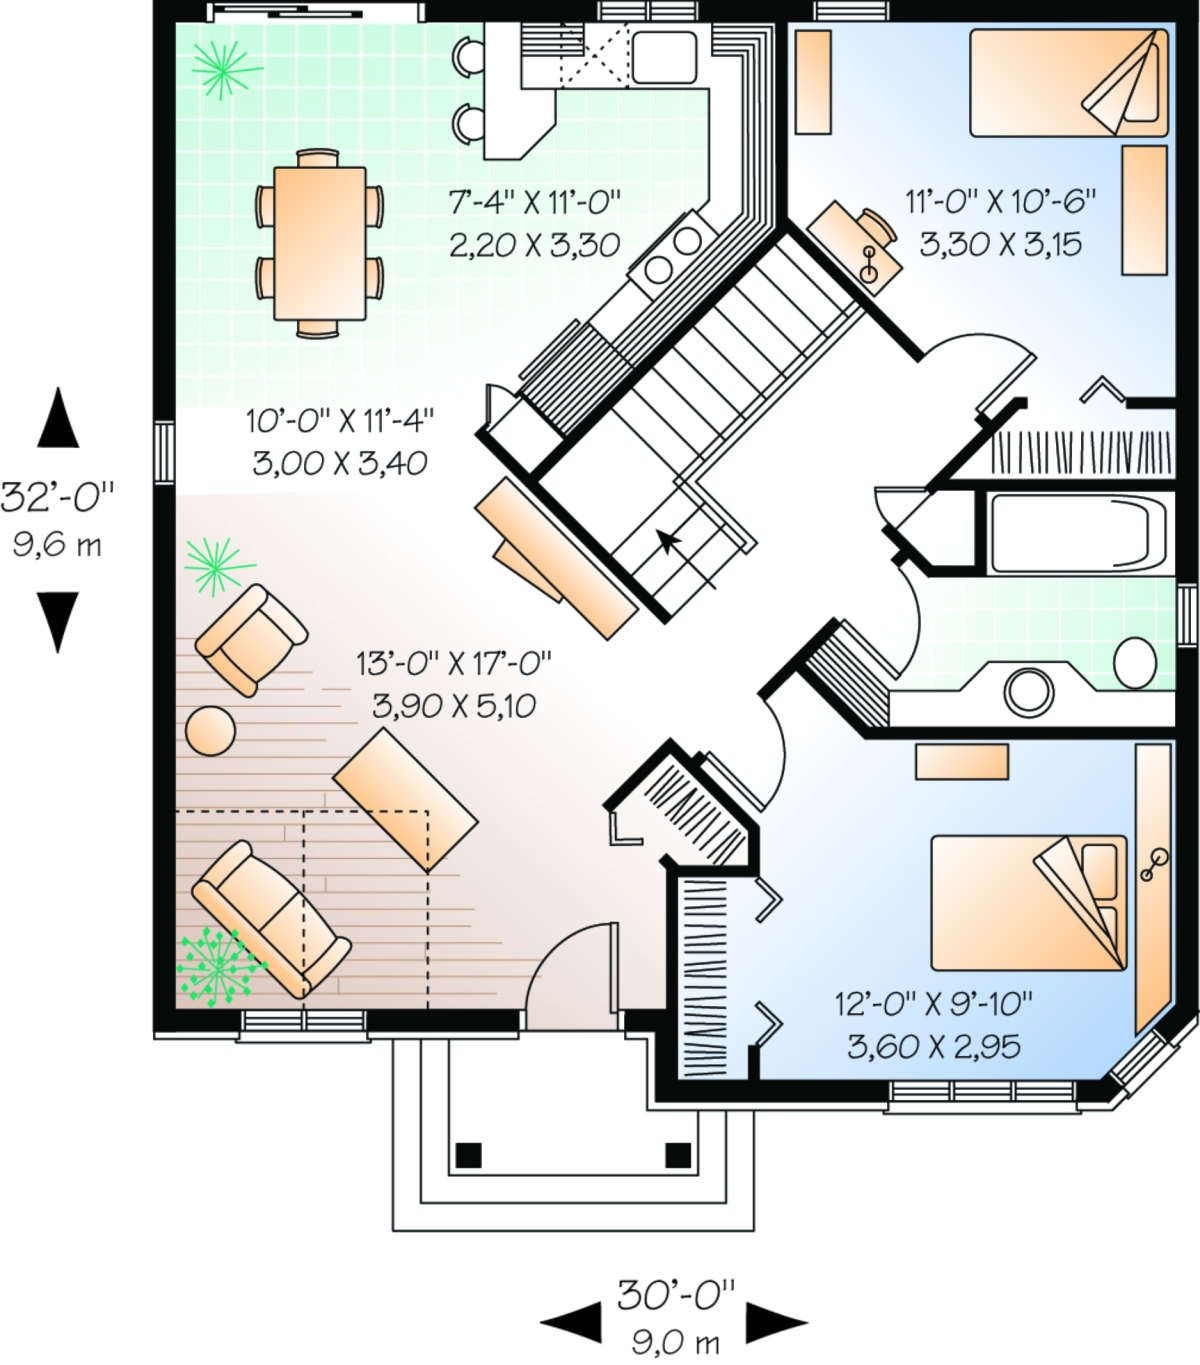 House Plan 034 00112 European Plan 929 Square Feet 2 Bedrooms 1 Bathroom In 2020 House Floor Plans European House Plans Small House Design